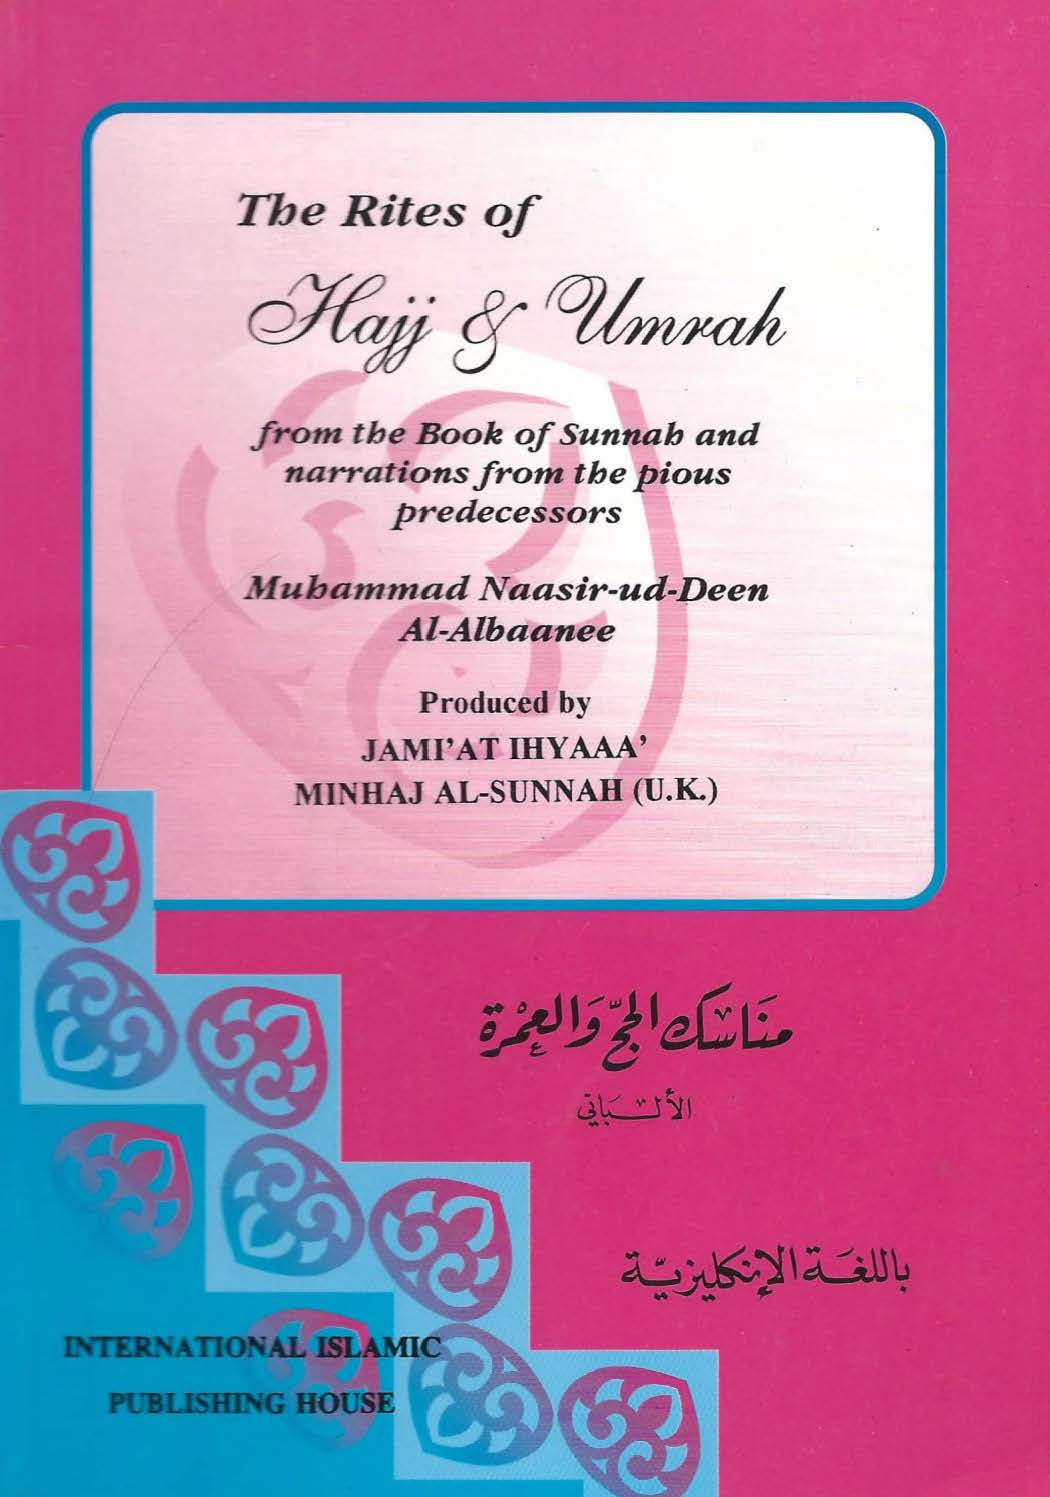 The Rites of Hajj & Umrah by Shaykh al Albaani - EMAANLIBRARY COM